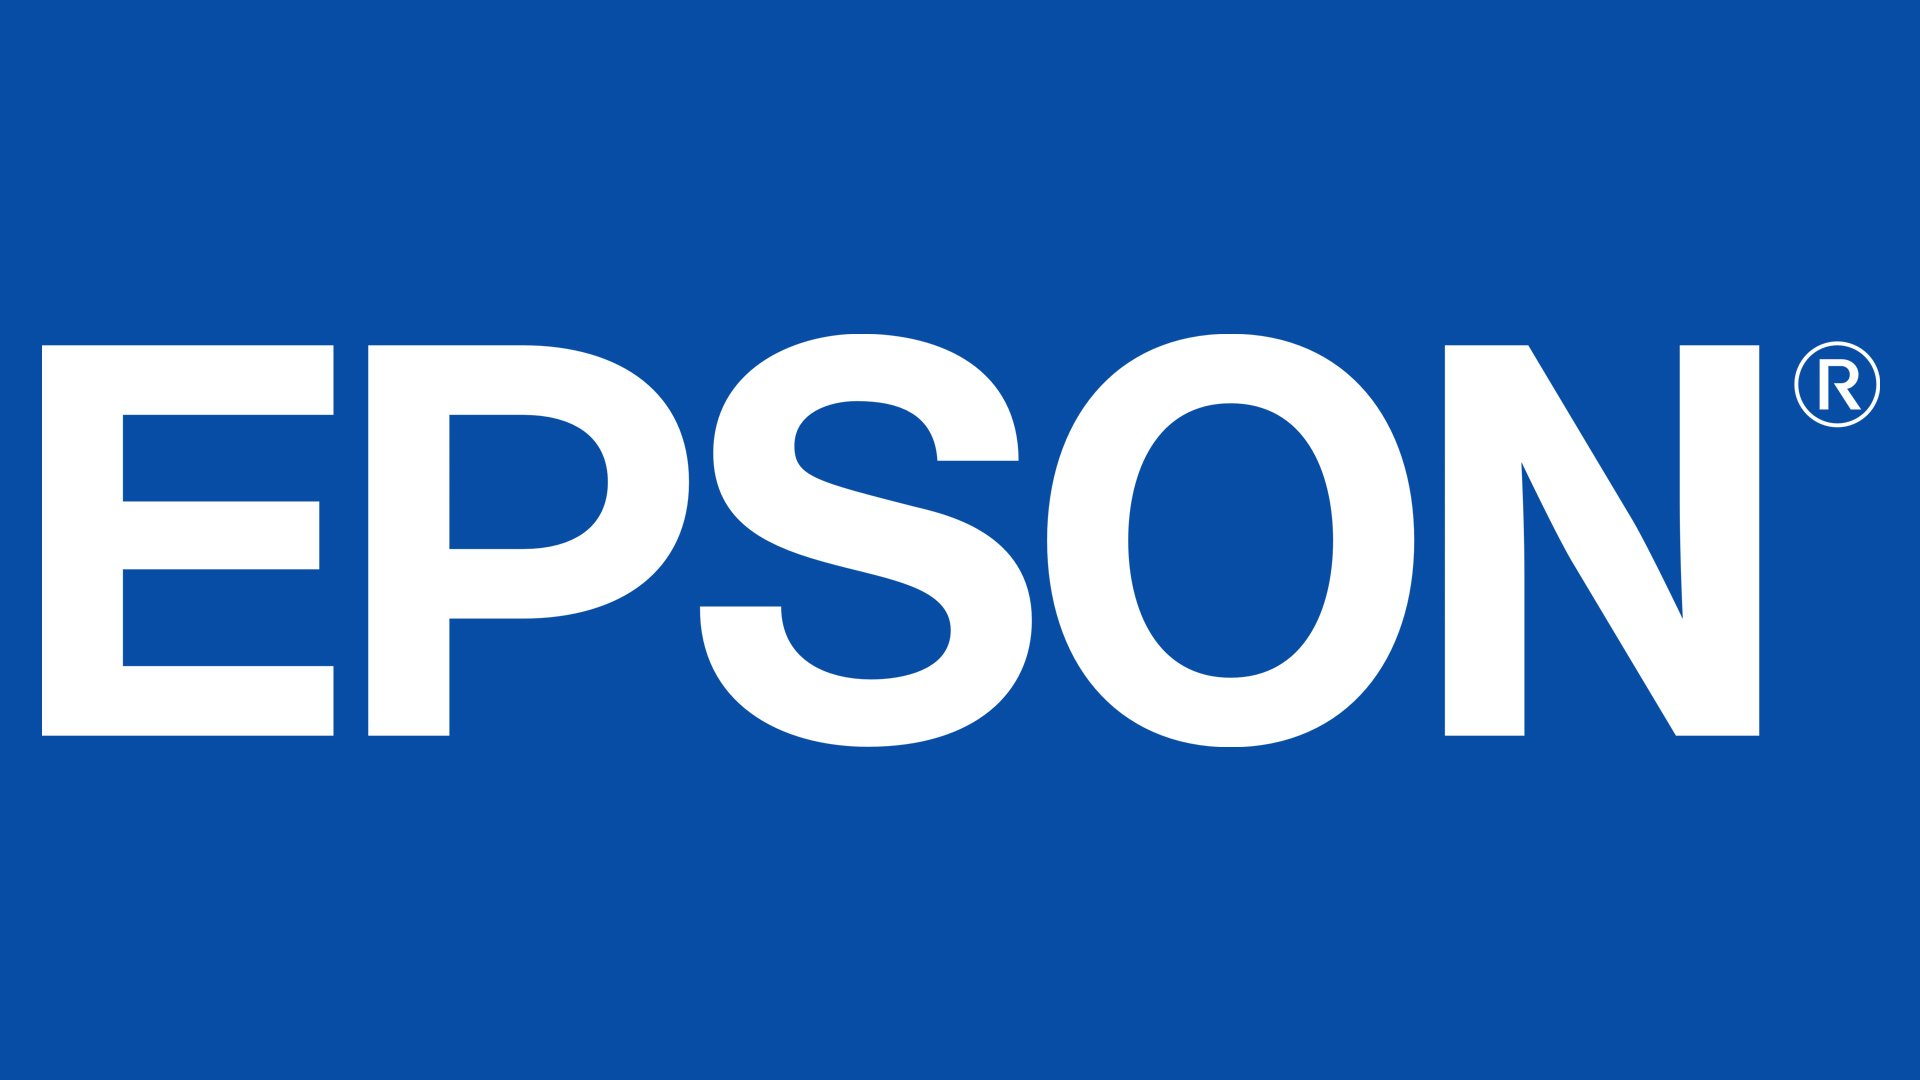 Epson logo and symbol, meaning, history, PNG